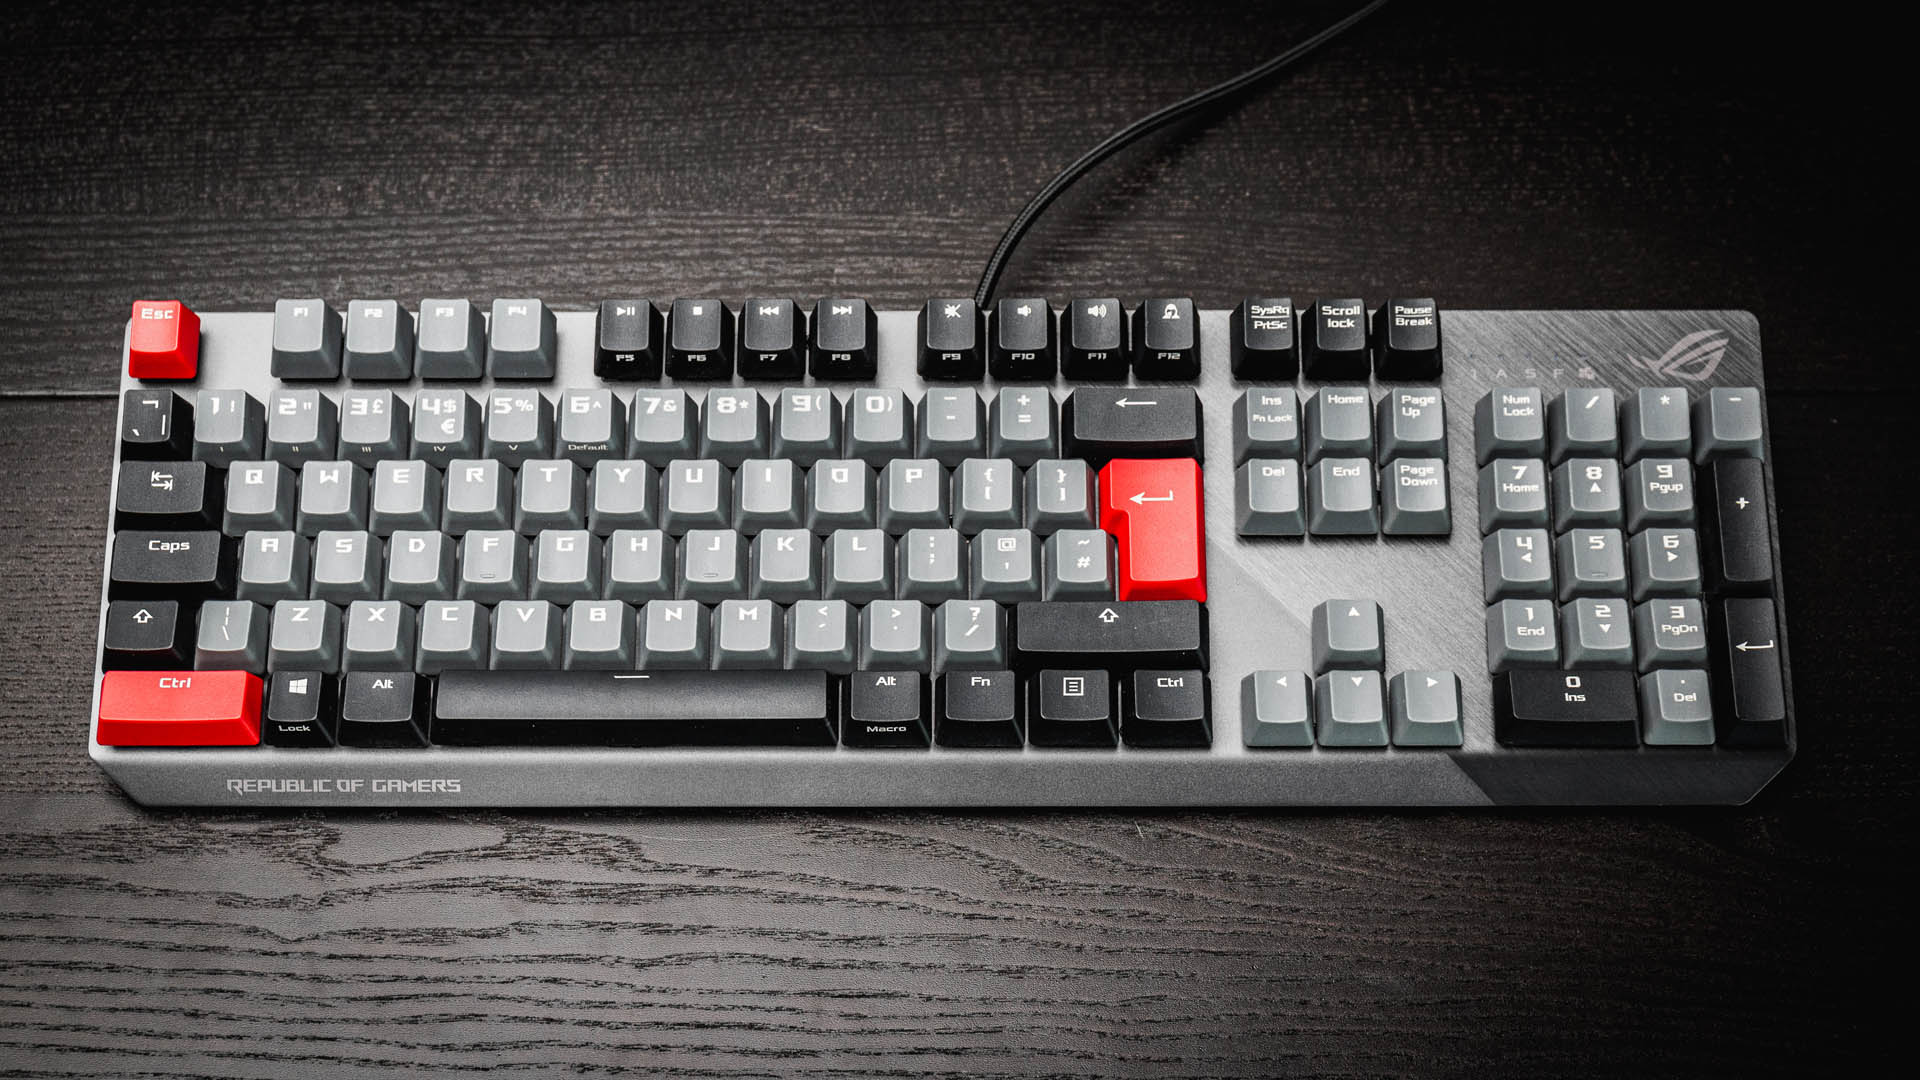 Asus Rog Strix Scope Pbt Review A Gaming Keyboard Built To Last Pcgamesn